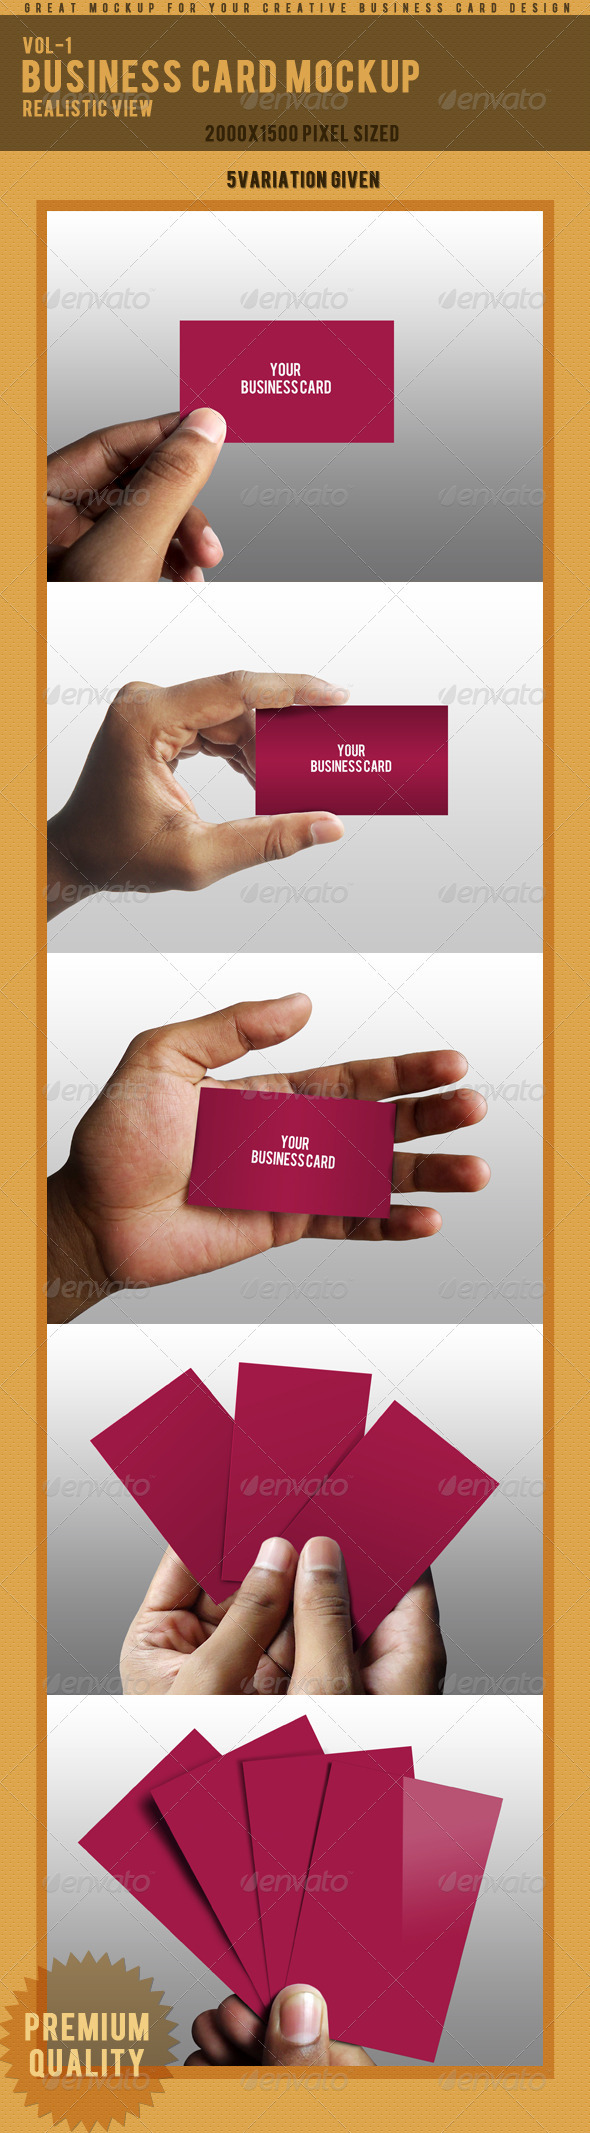 Business card mockups graphics designs templates reheart Images